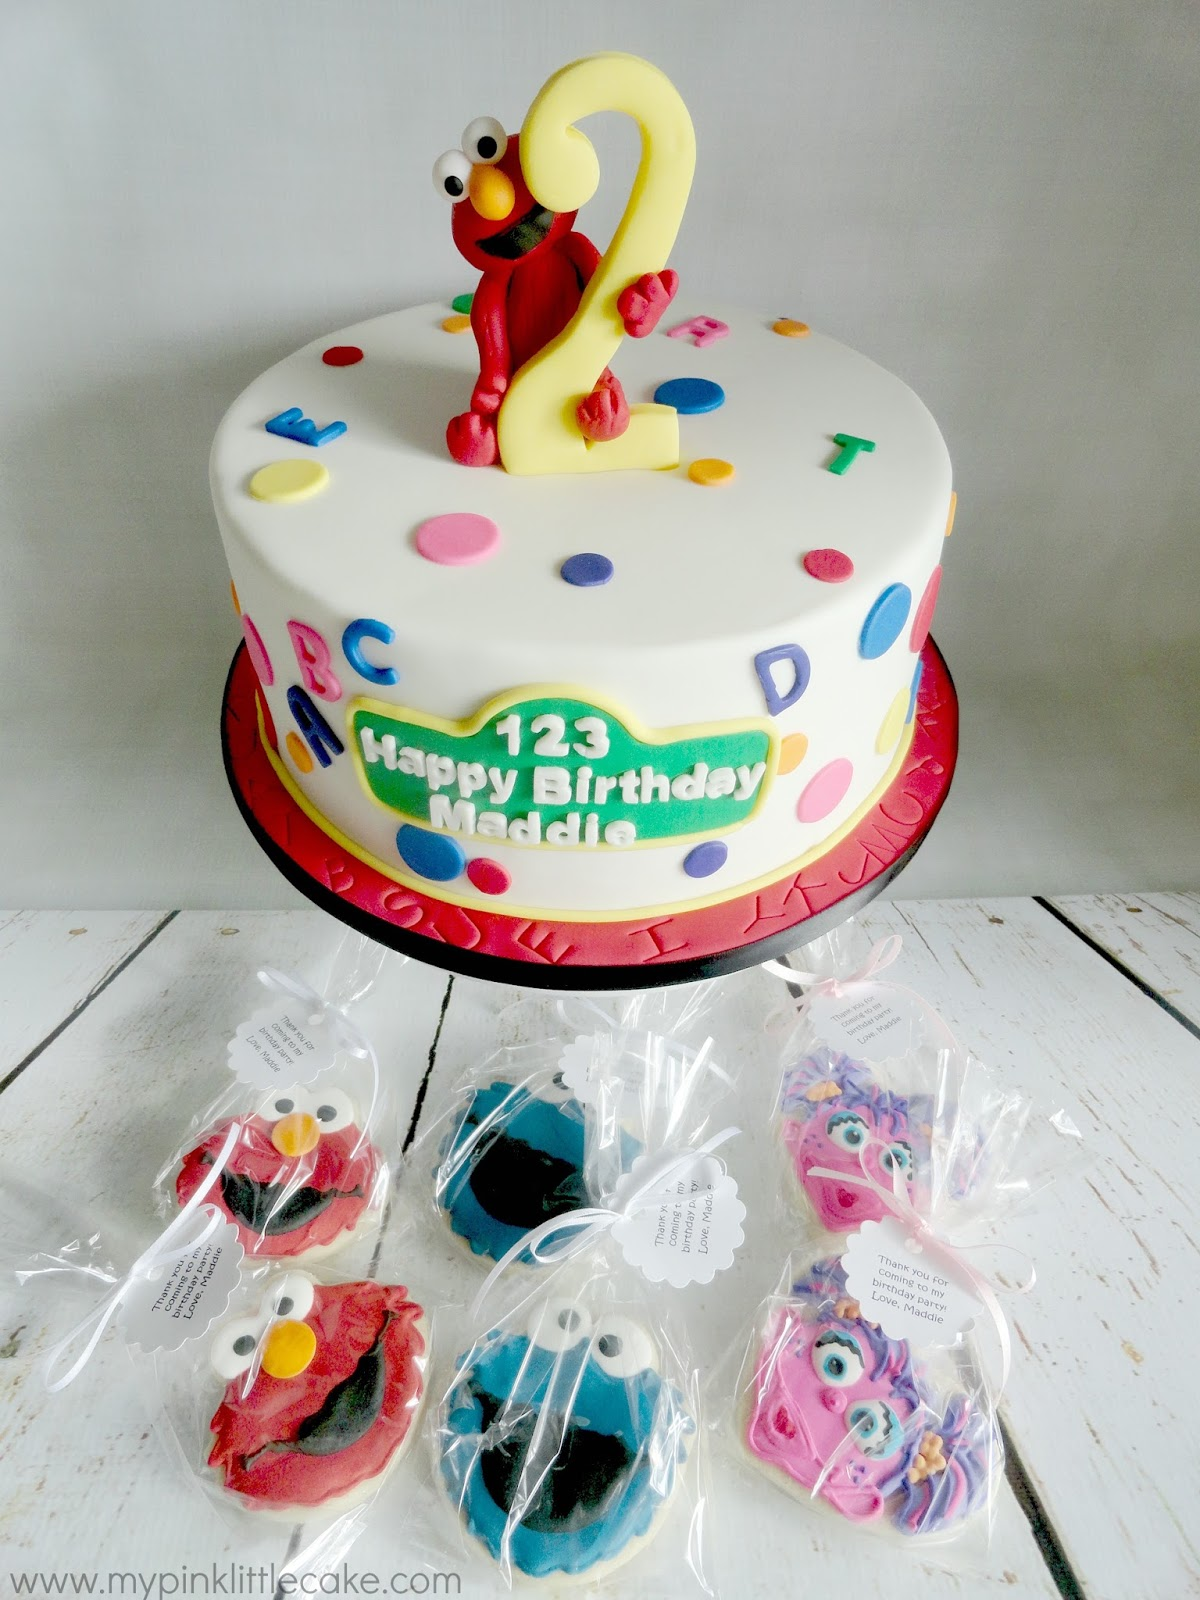 Elmo Theme Birthday Cake And Sesame Street Cookie Favors Posted By My Pink Little At 205 PM